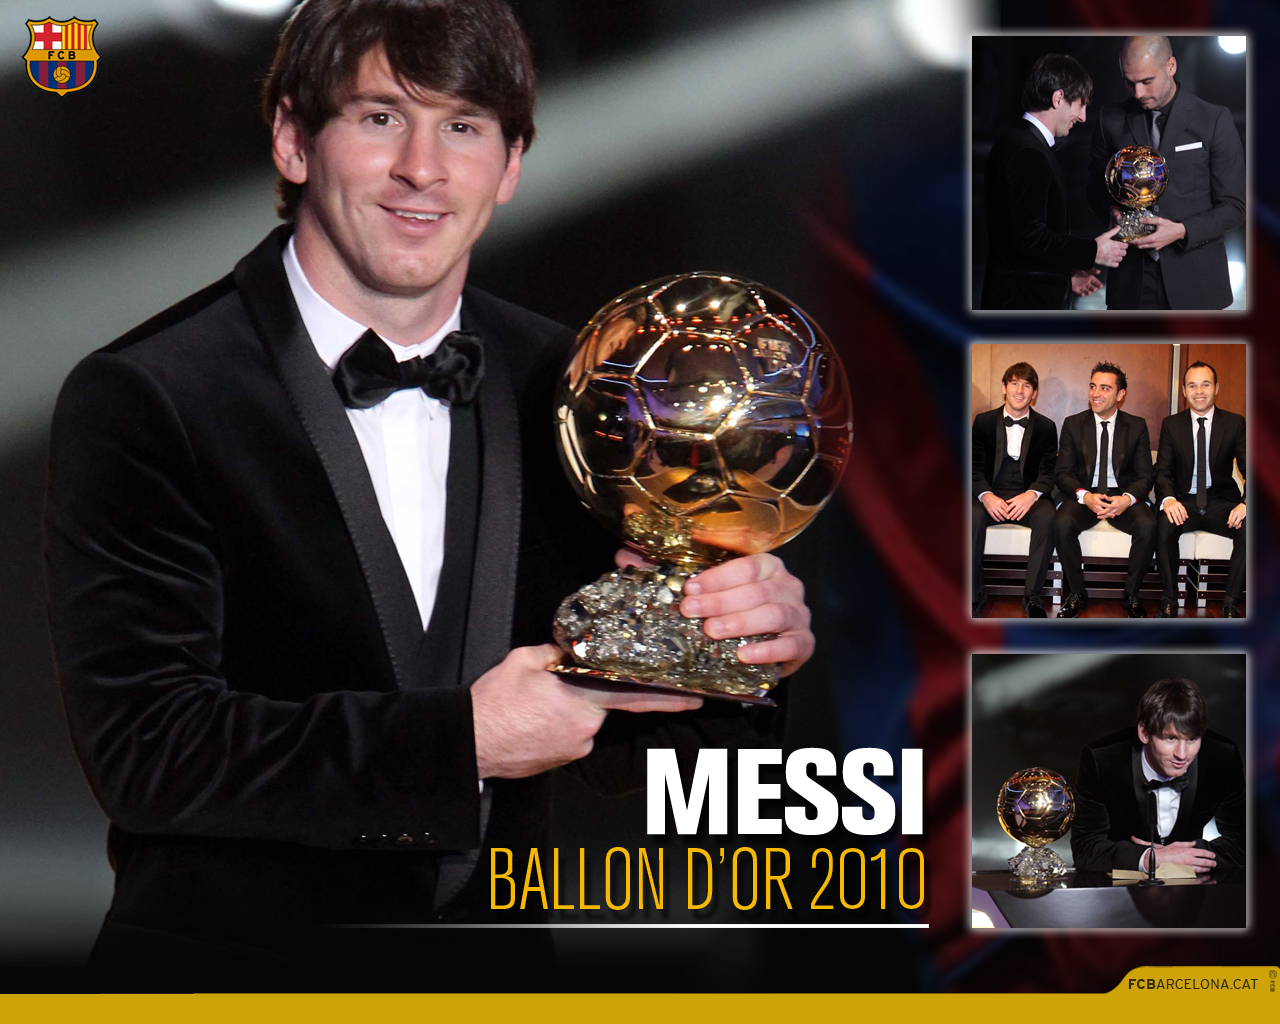 ballon d'or - photo #39